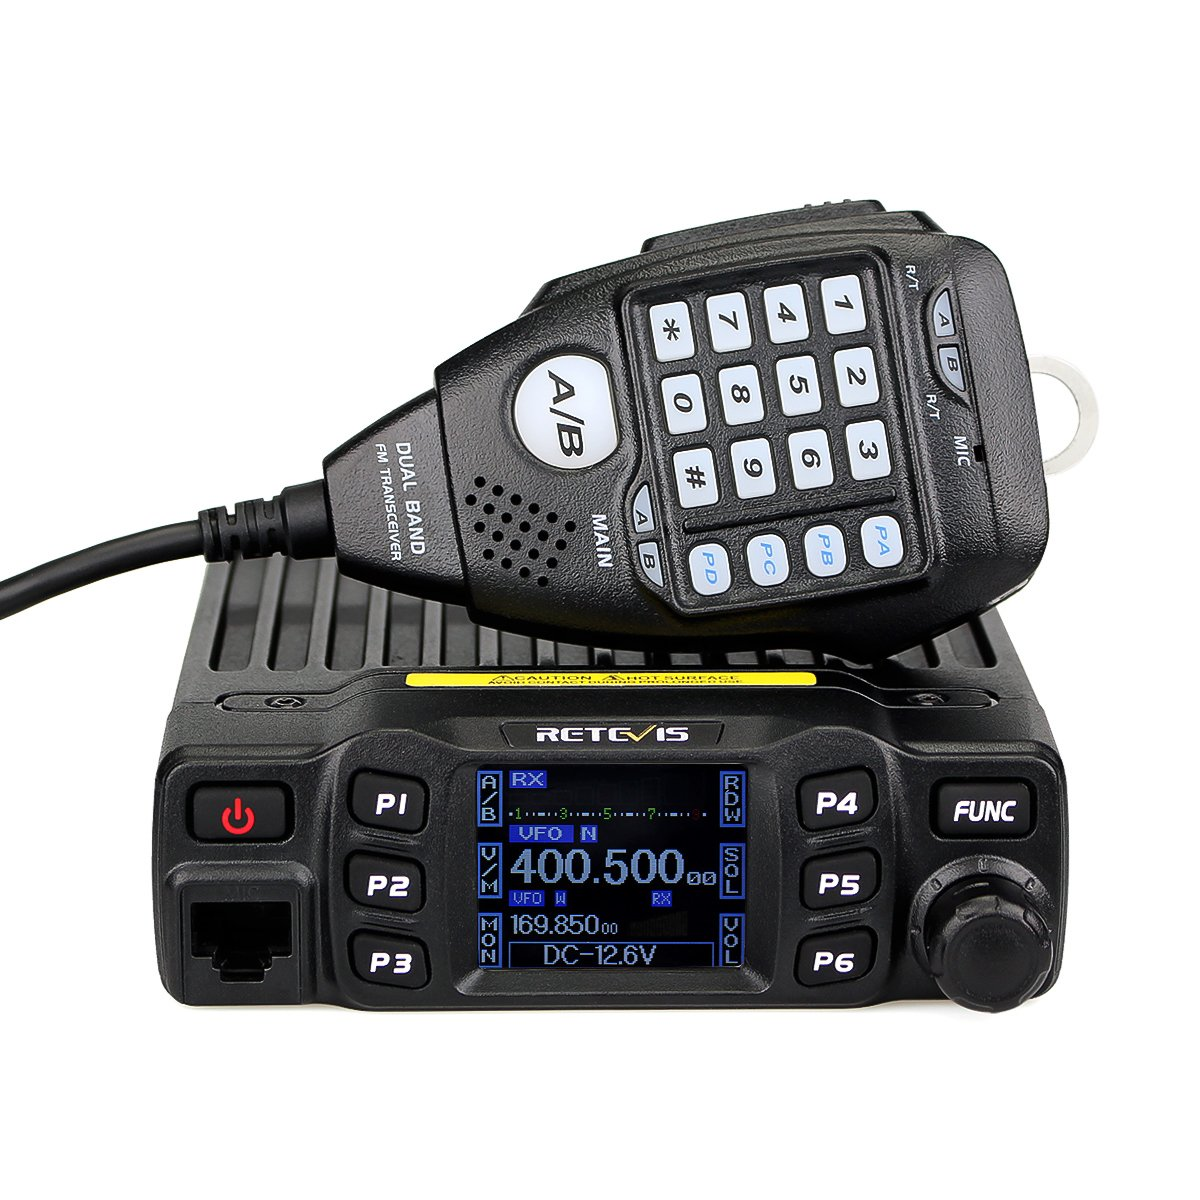 Retevis RT95 Mobile Radio Dual Band Transceiver VHF 136-174 MHz UHF 430-490  MHz 25W Color LCD Mobile Two Way Radio with DTMF Function (Black, 1 Pack)